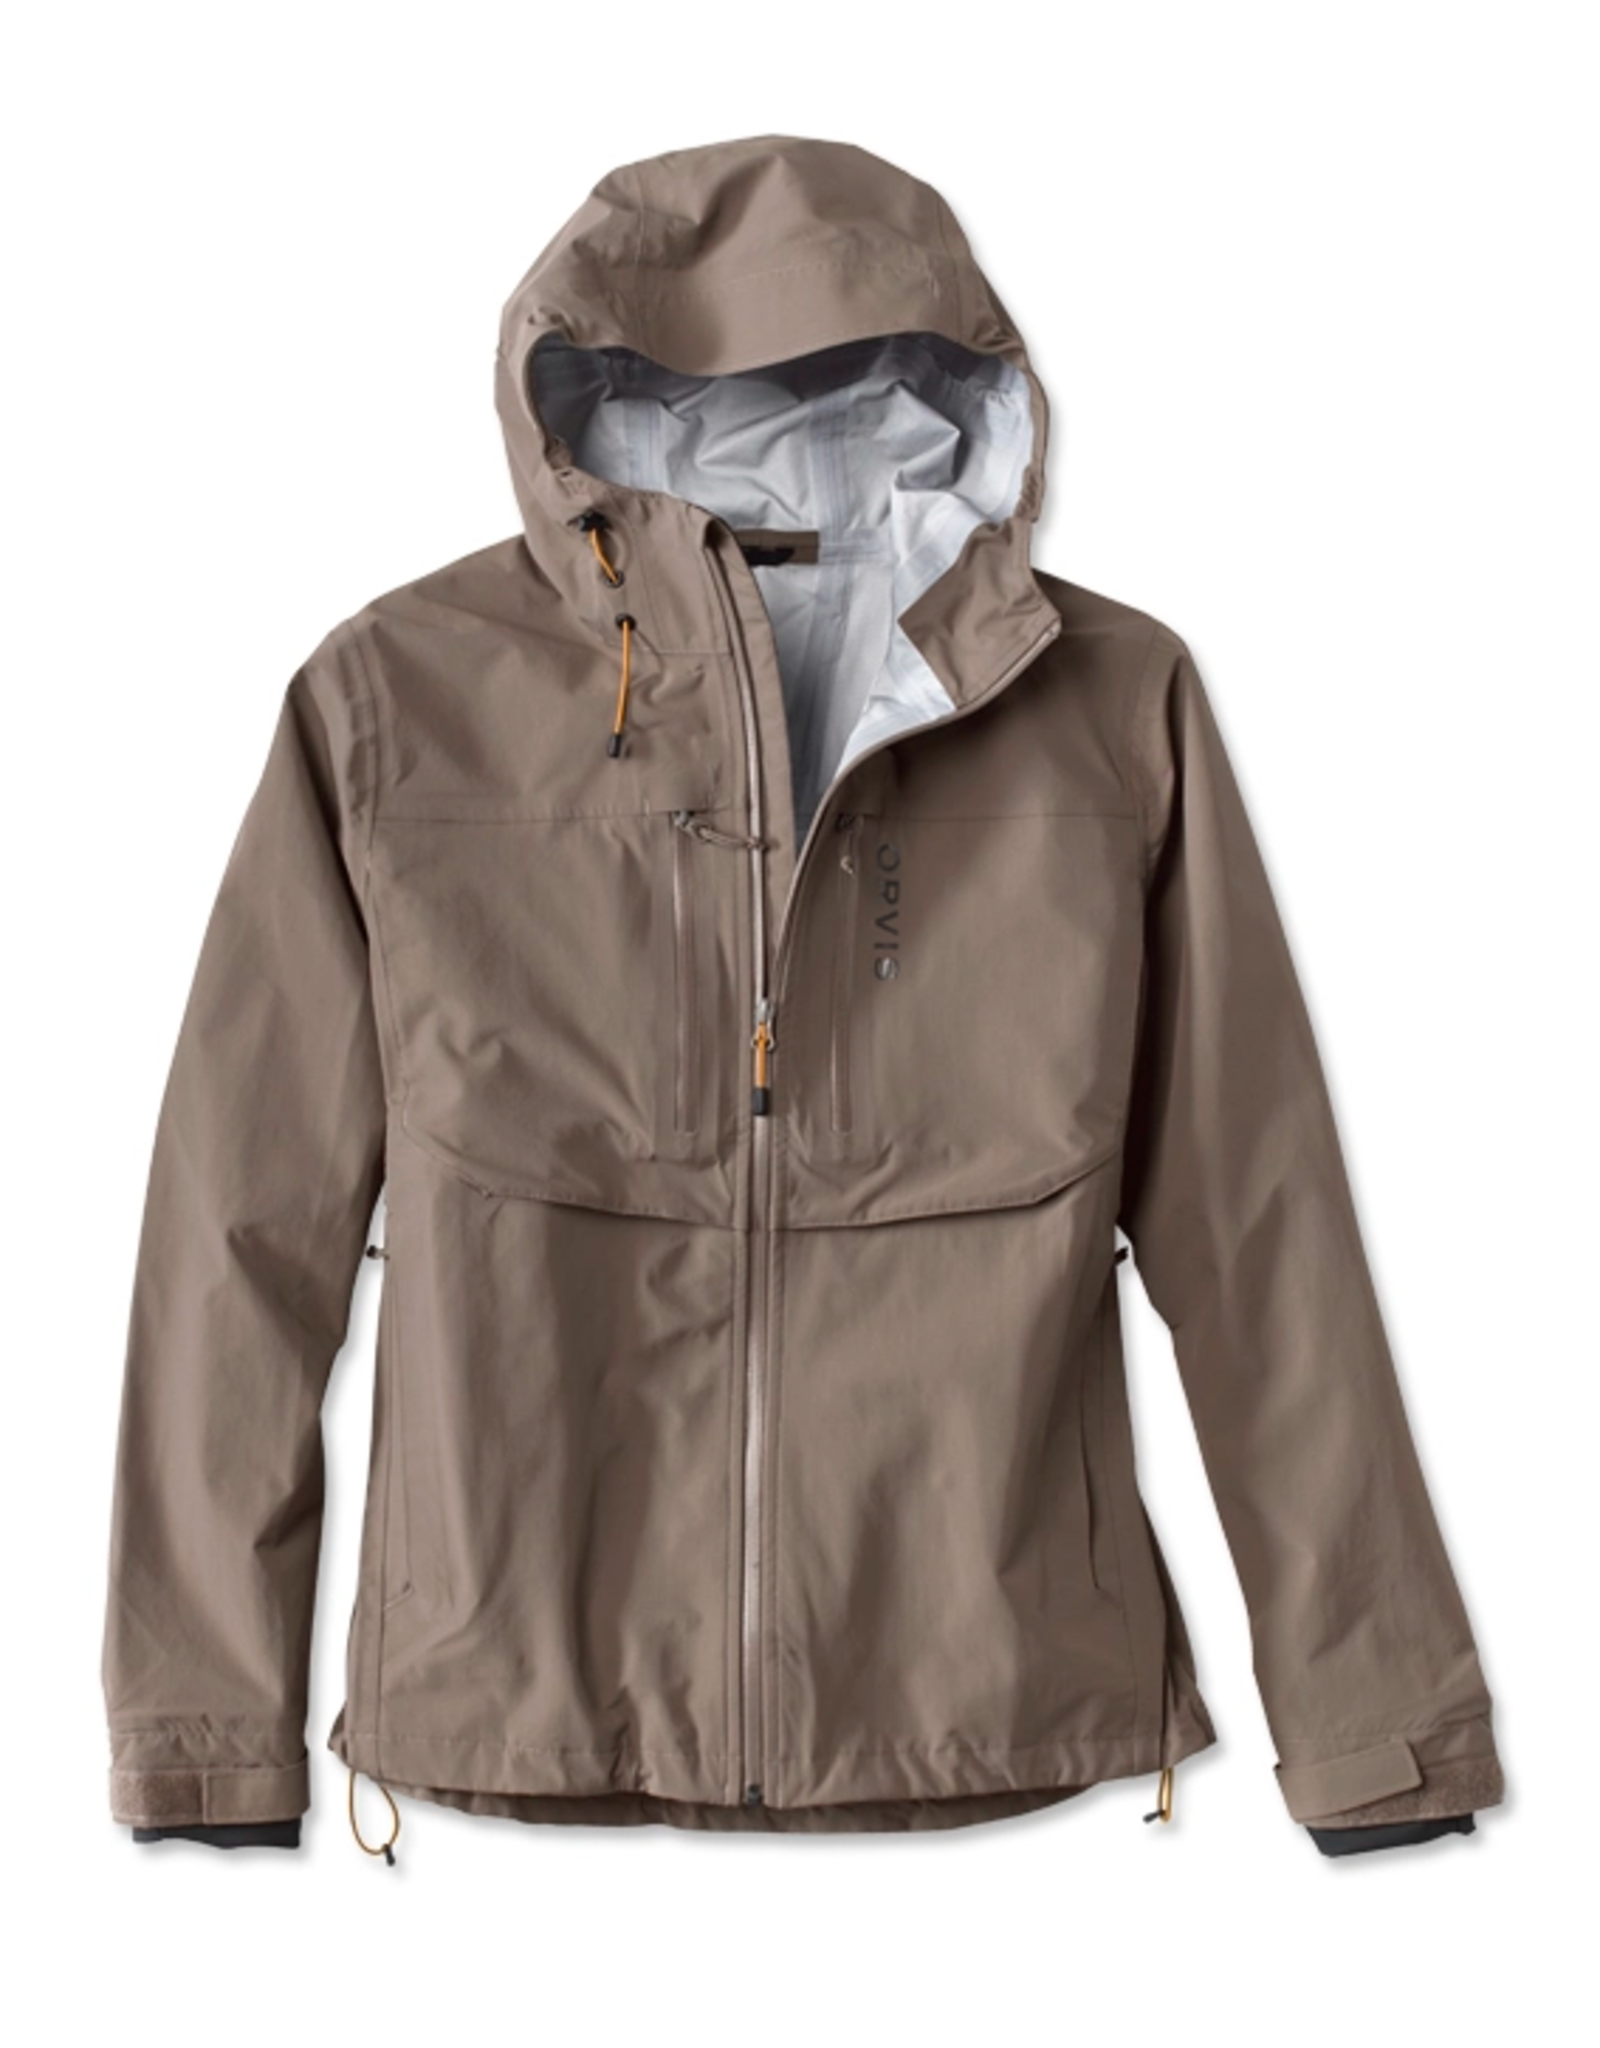 Orvis NEW Orvis Clearwater Jacket